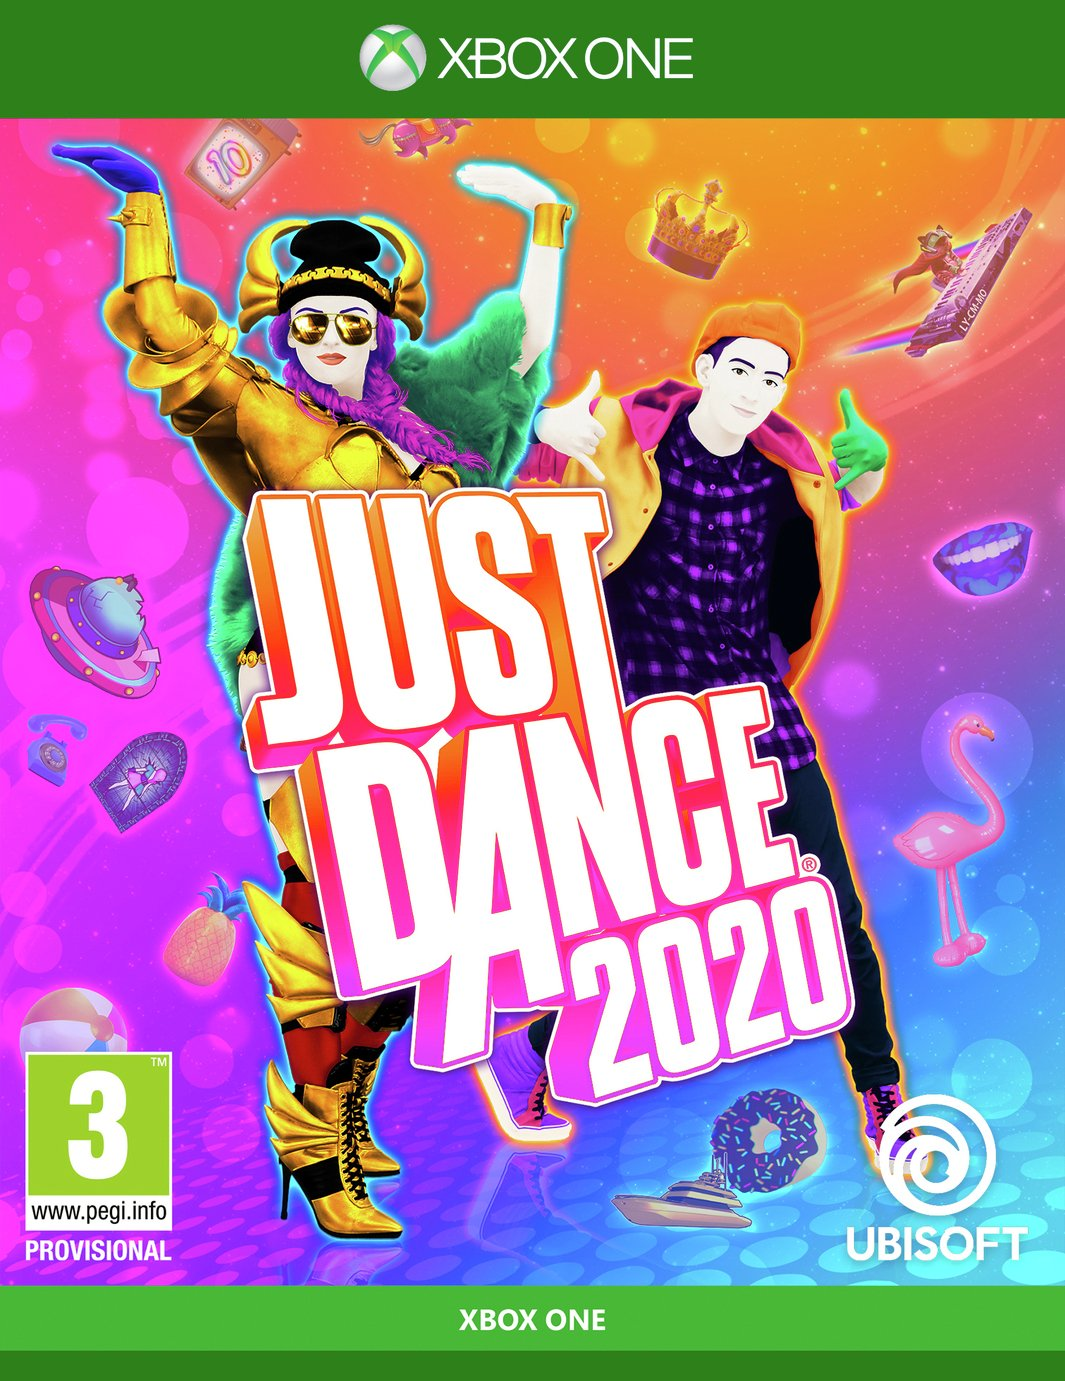 Just Dance 2020 Xbox One Pre-Order Game